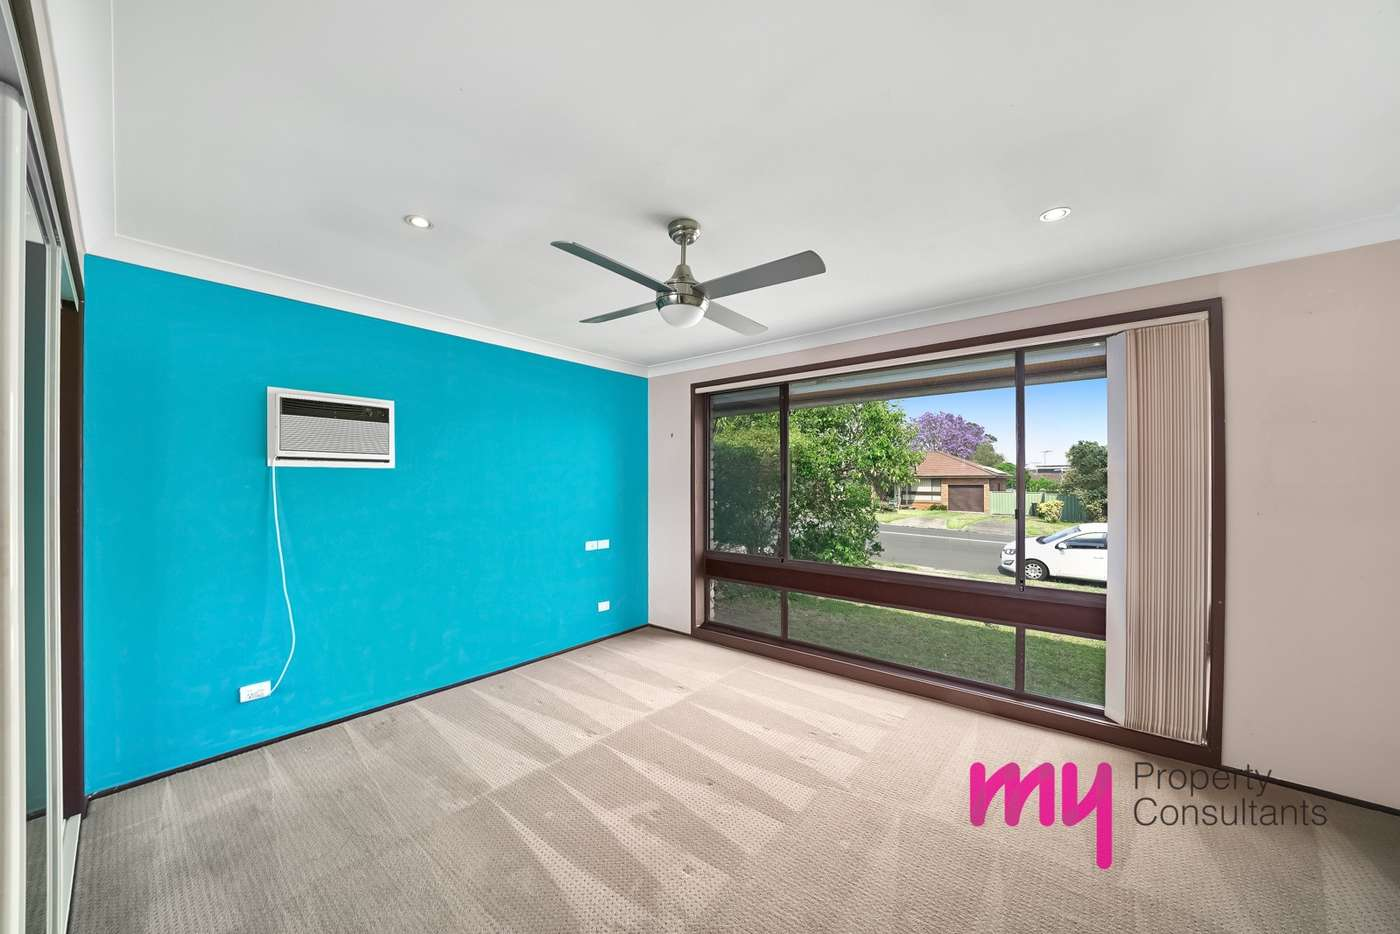 Sixth view of Homely house listing, 122 Bellinger Road, Ruse NSW 2560